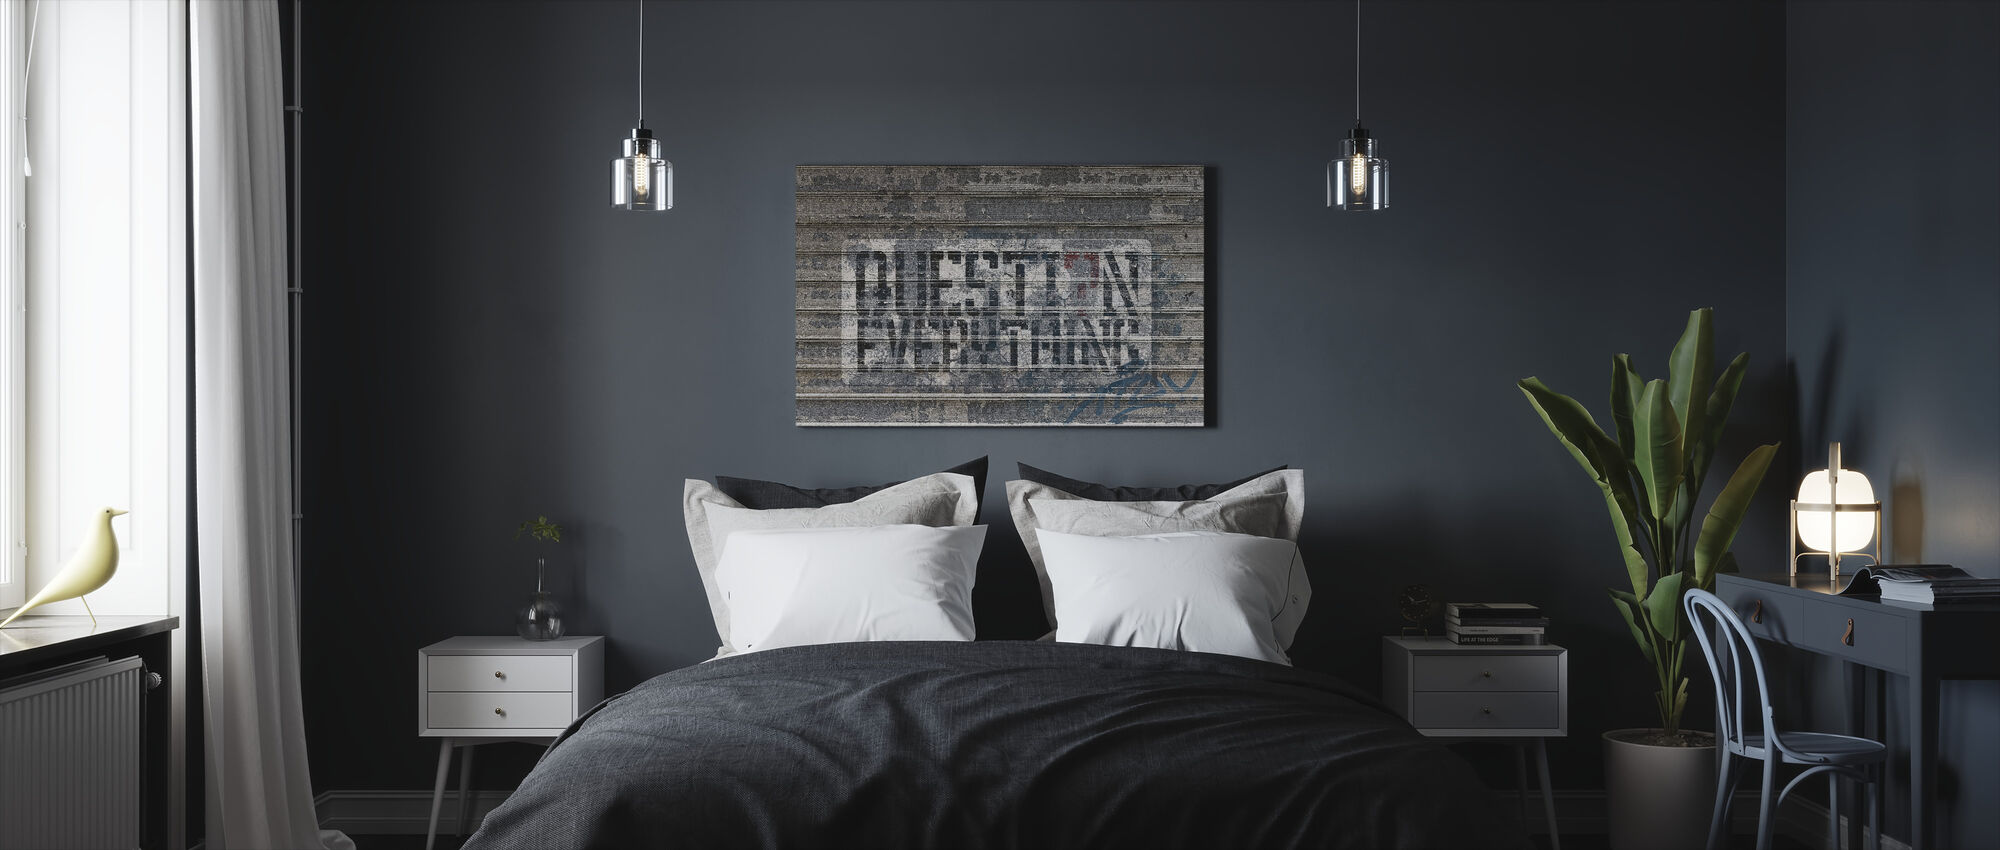 Graffiti Street Art - Canvas print - Bedroom